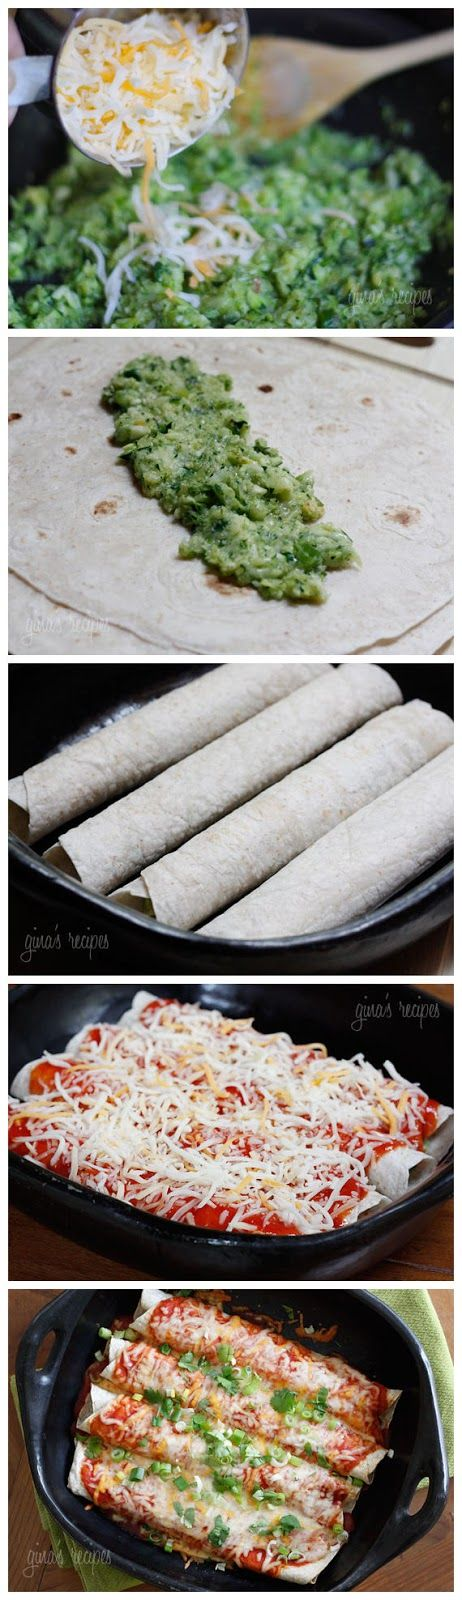 Cheesy Zucchini Enchiladas | Recipes | Pinterest